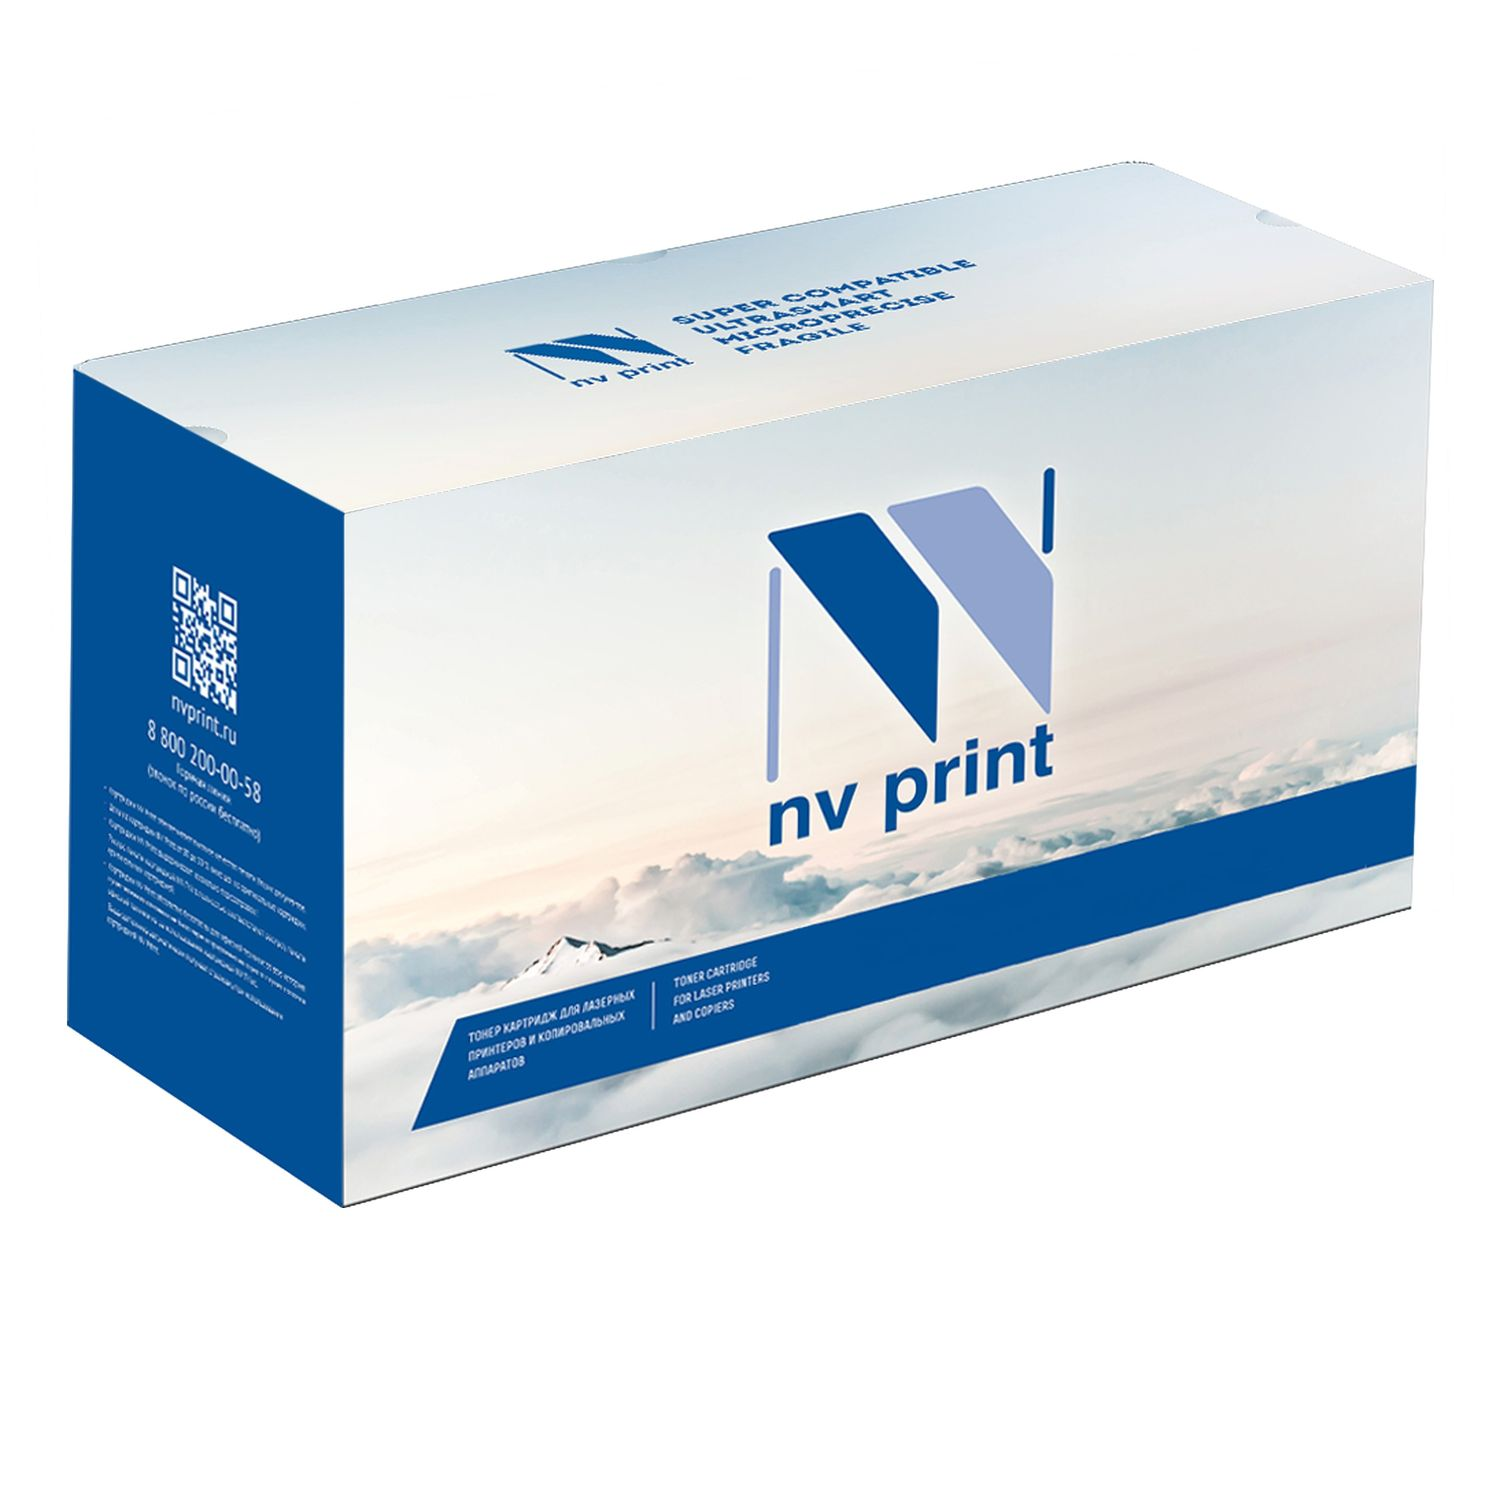 Картридж NV Print совместимый NV-T106R02778 для Xerox Phaser 3052/3260/WorkCentre 3215/3225 (3000k) картридж nv print 51b5000t для lexmark совместимый